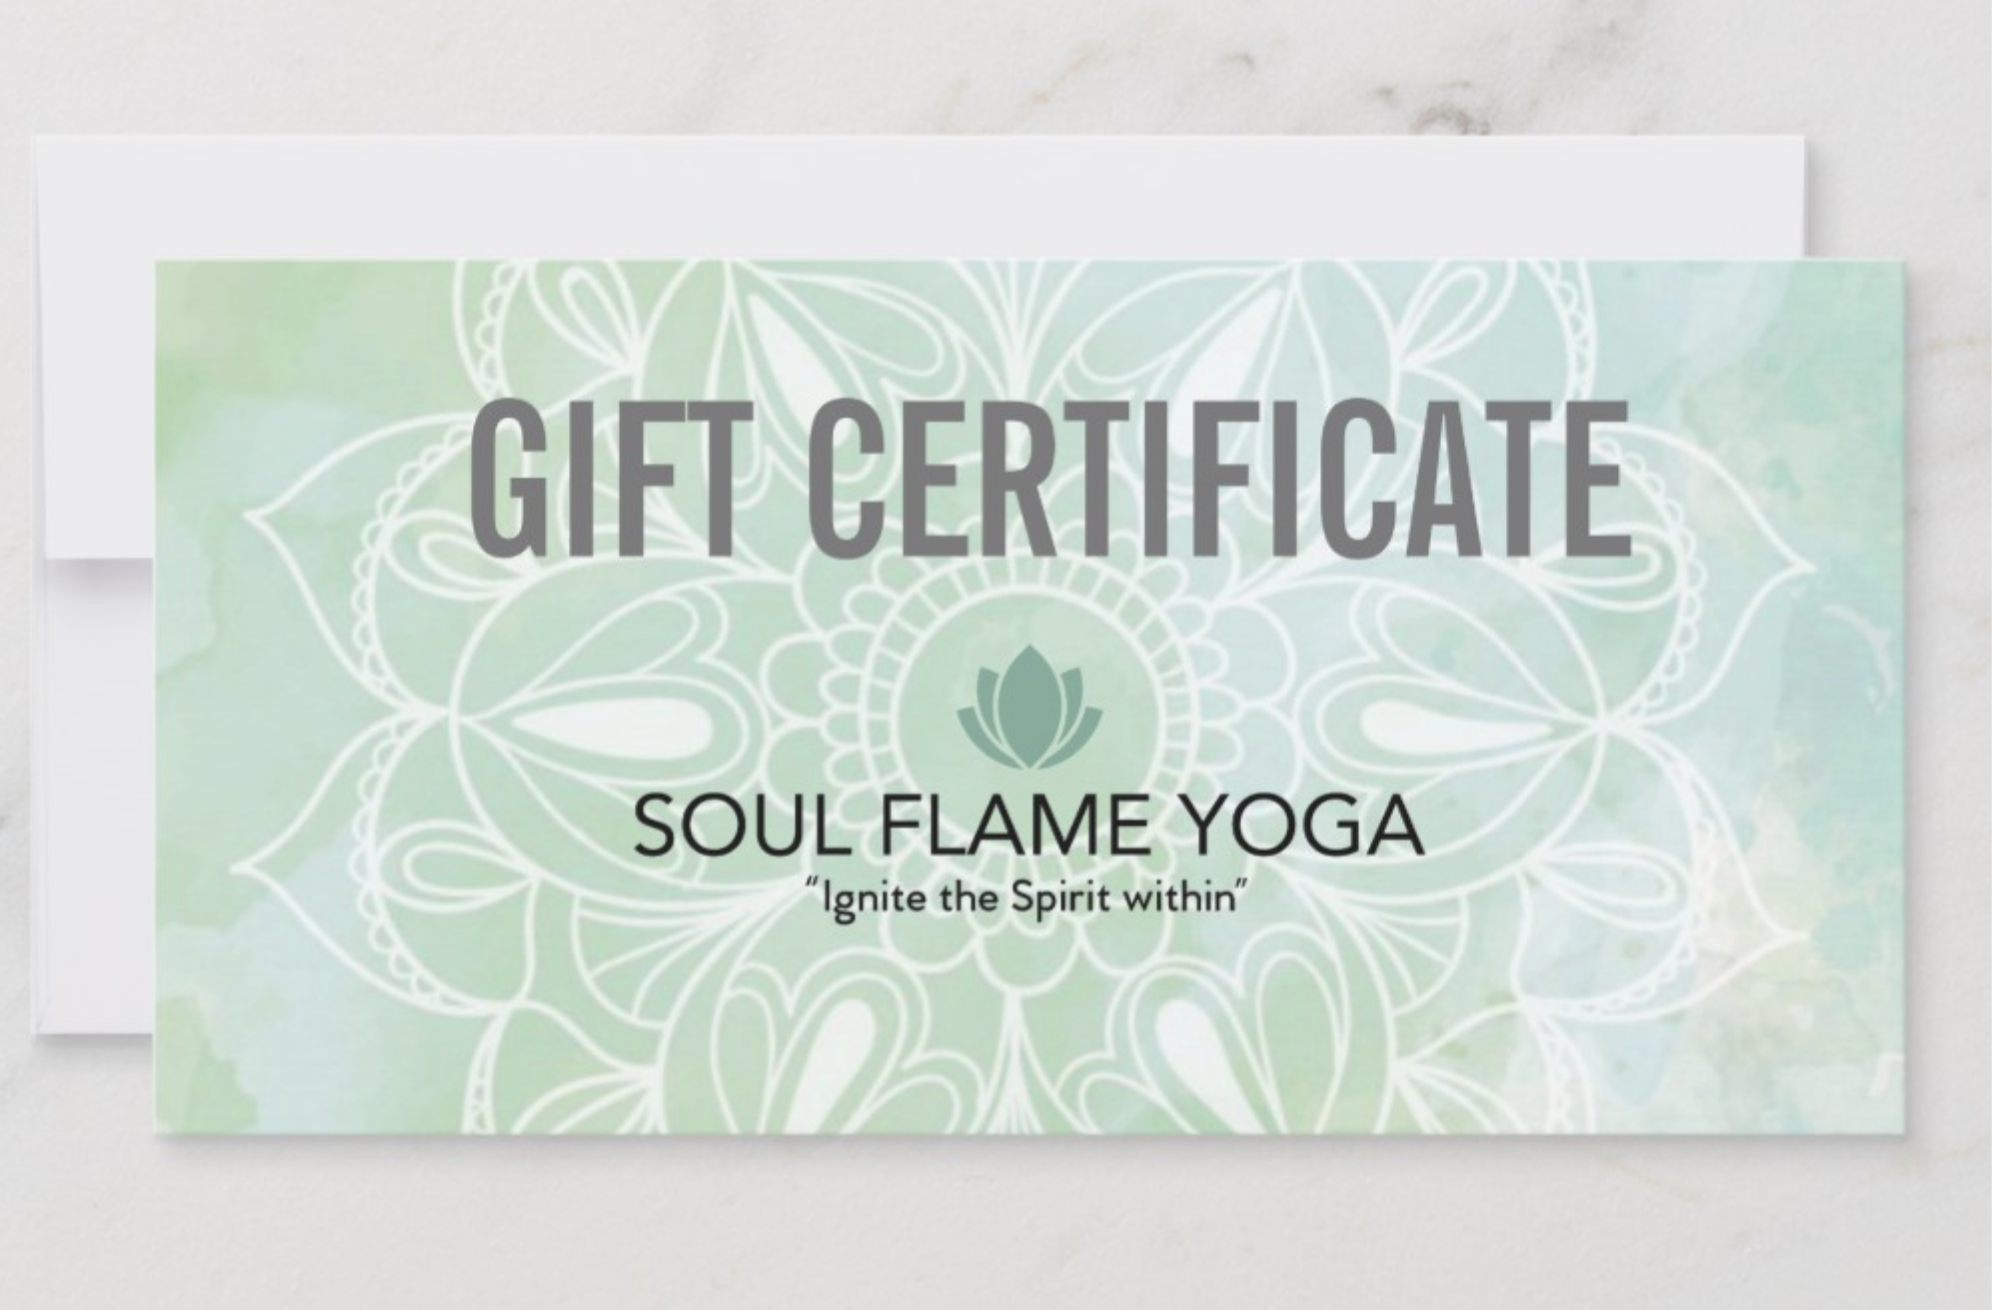 A GIFT FOR YOU! - We all know that one person in our life who loves YOGA… or could use some chill in their life! T his is your chance to give the gift that keeps on giving! Our Gift Certificate can be used for anything!! Meditation, Yoga or Workshops. You decide on the amount and apply to whatever suits!Purchasing a gift card is as easy as clicking on the link below.